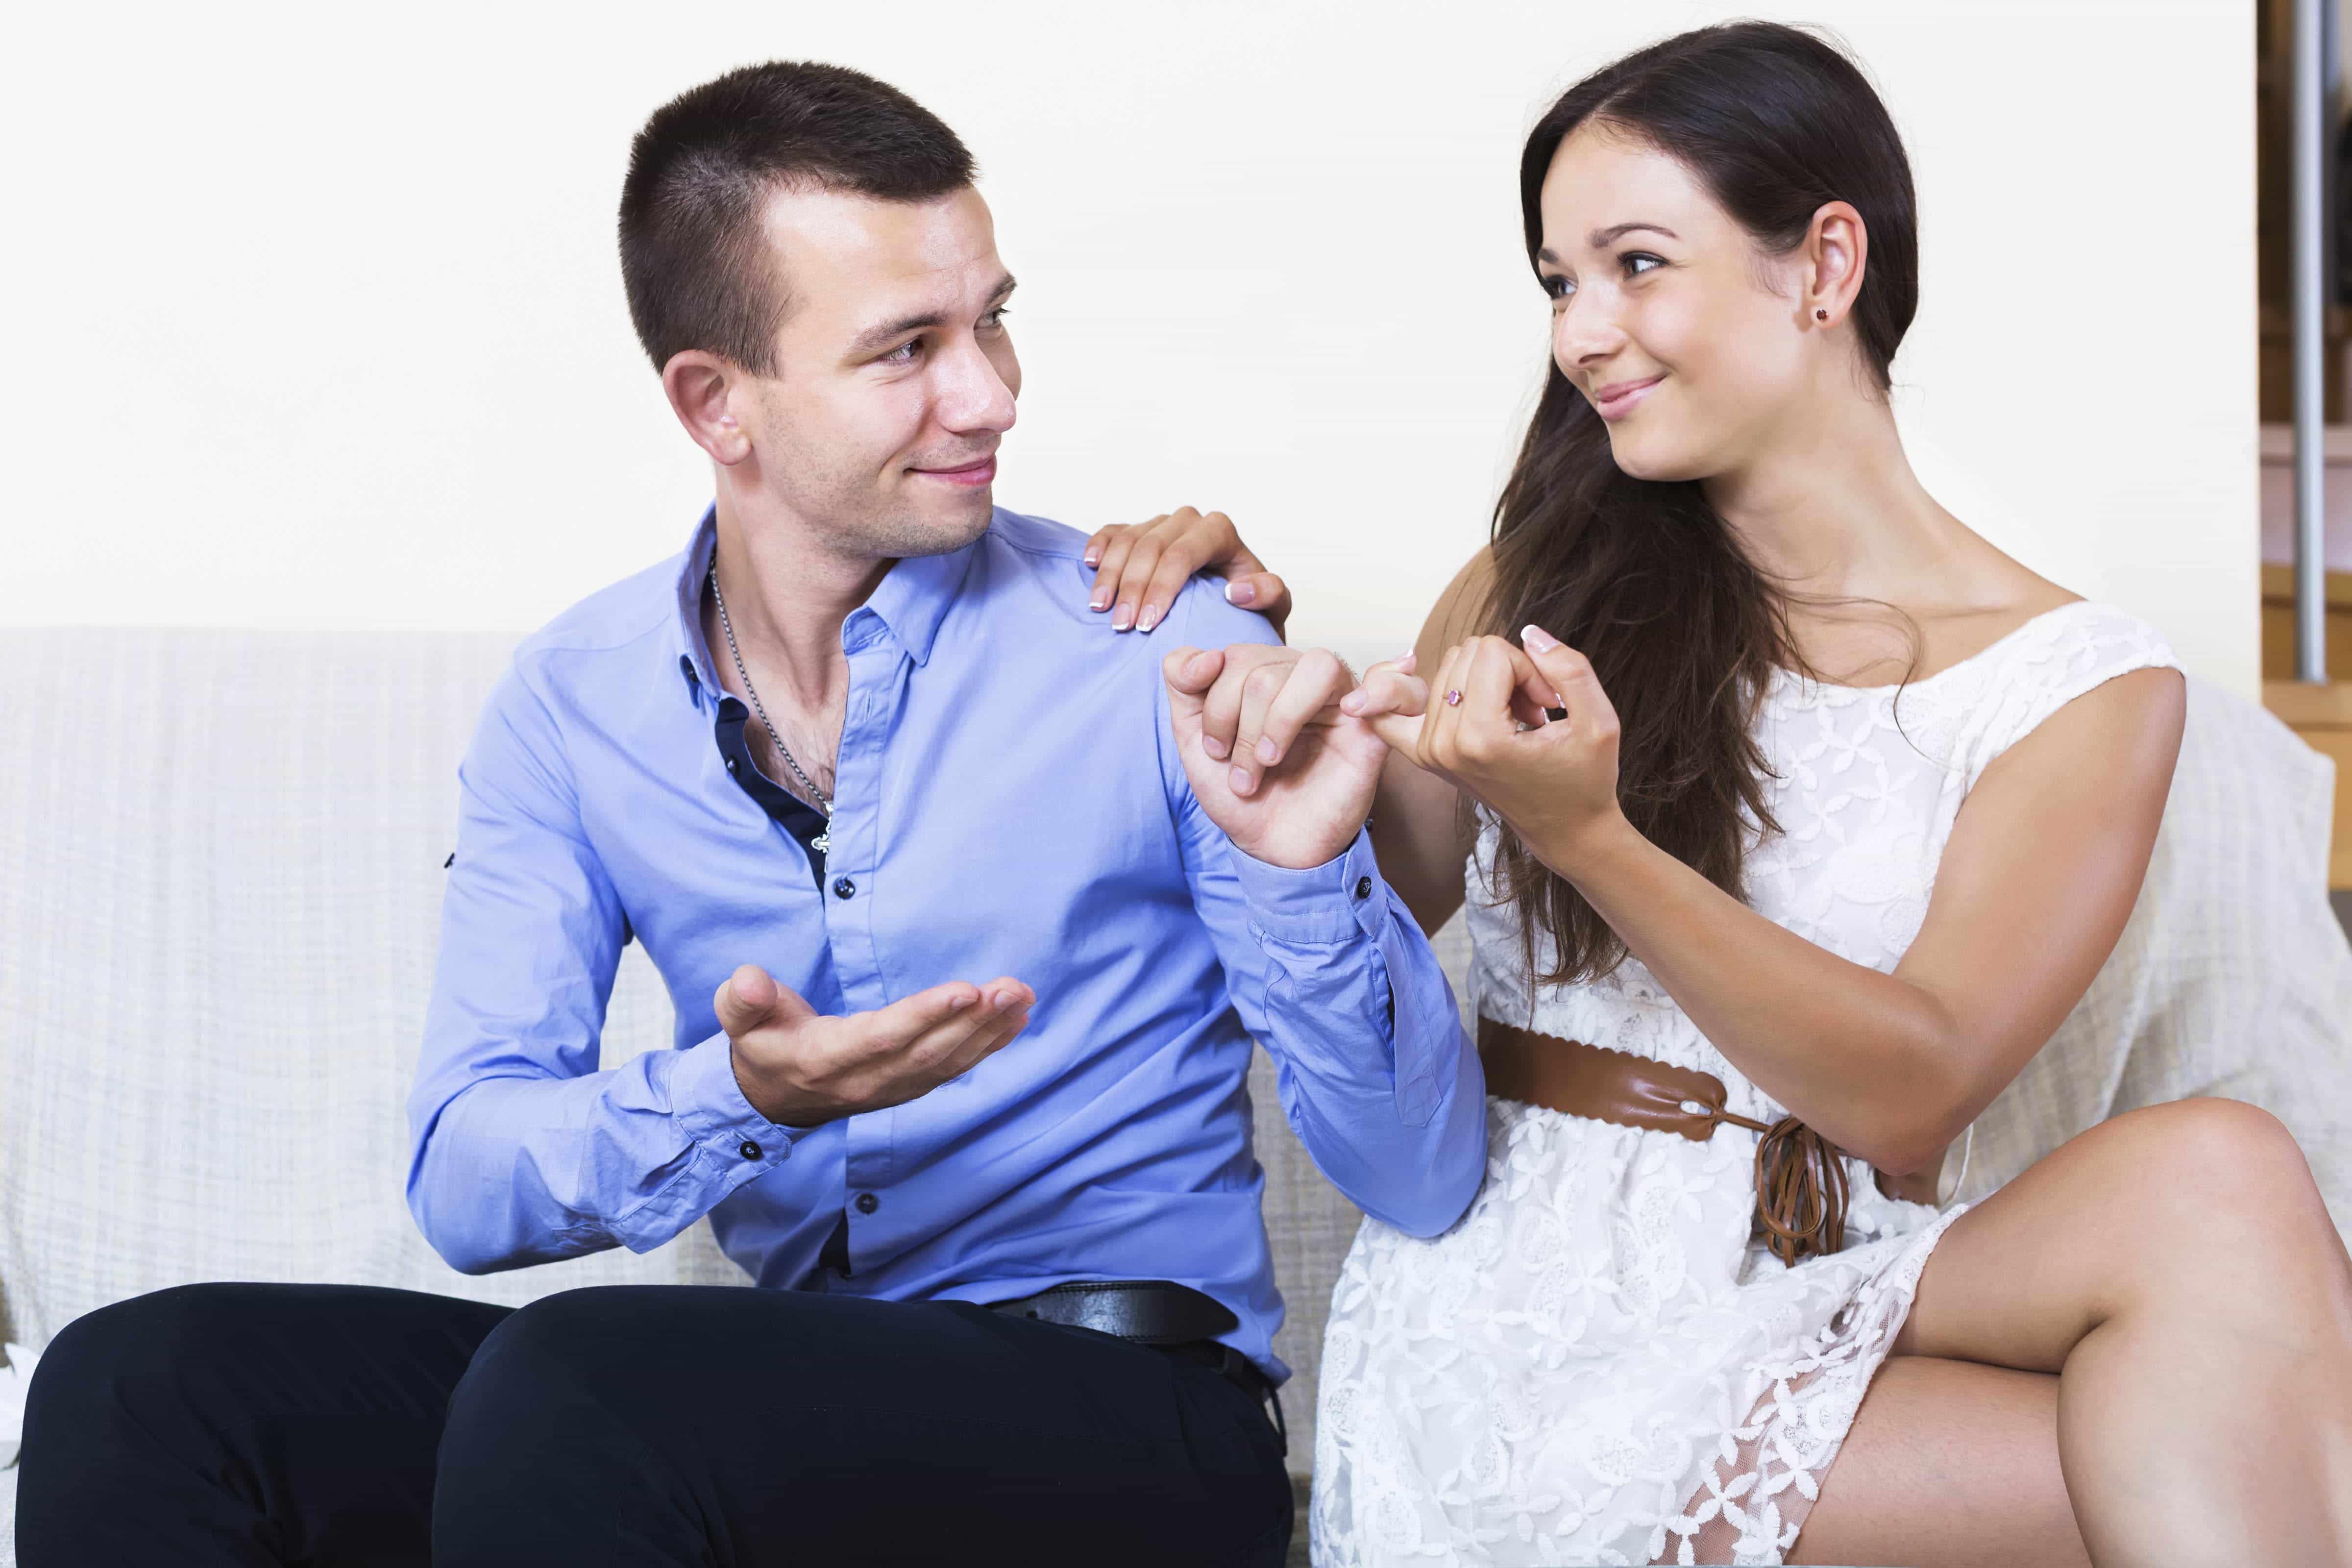 Pinky swear that you won't hide money from your significant other and commit financial infidelity